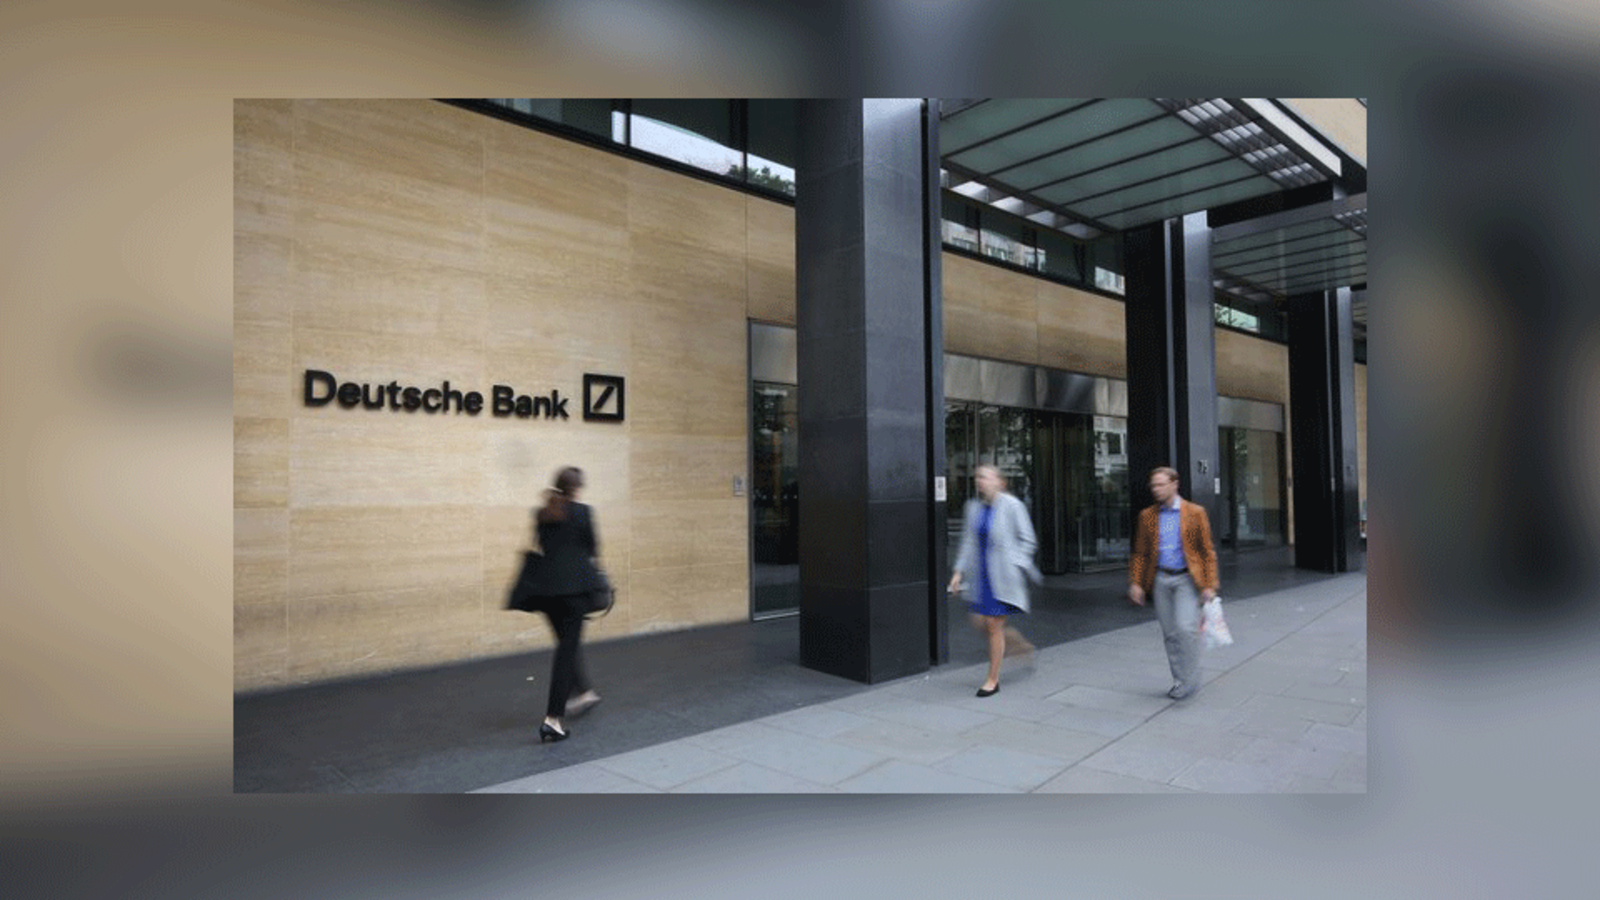 Deutsche Bank says to slash 18,000 jobs by 2022